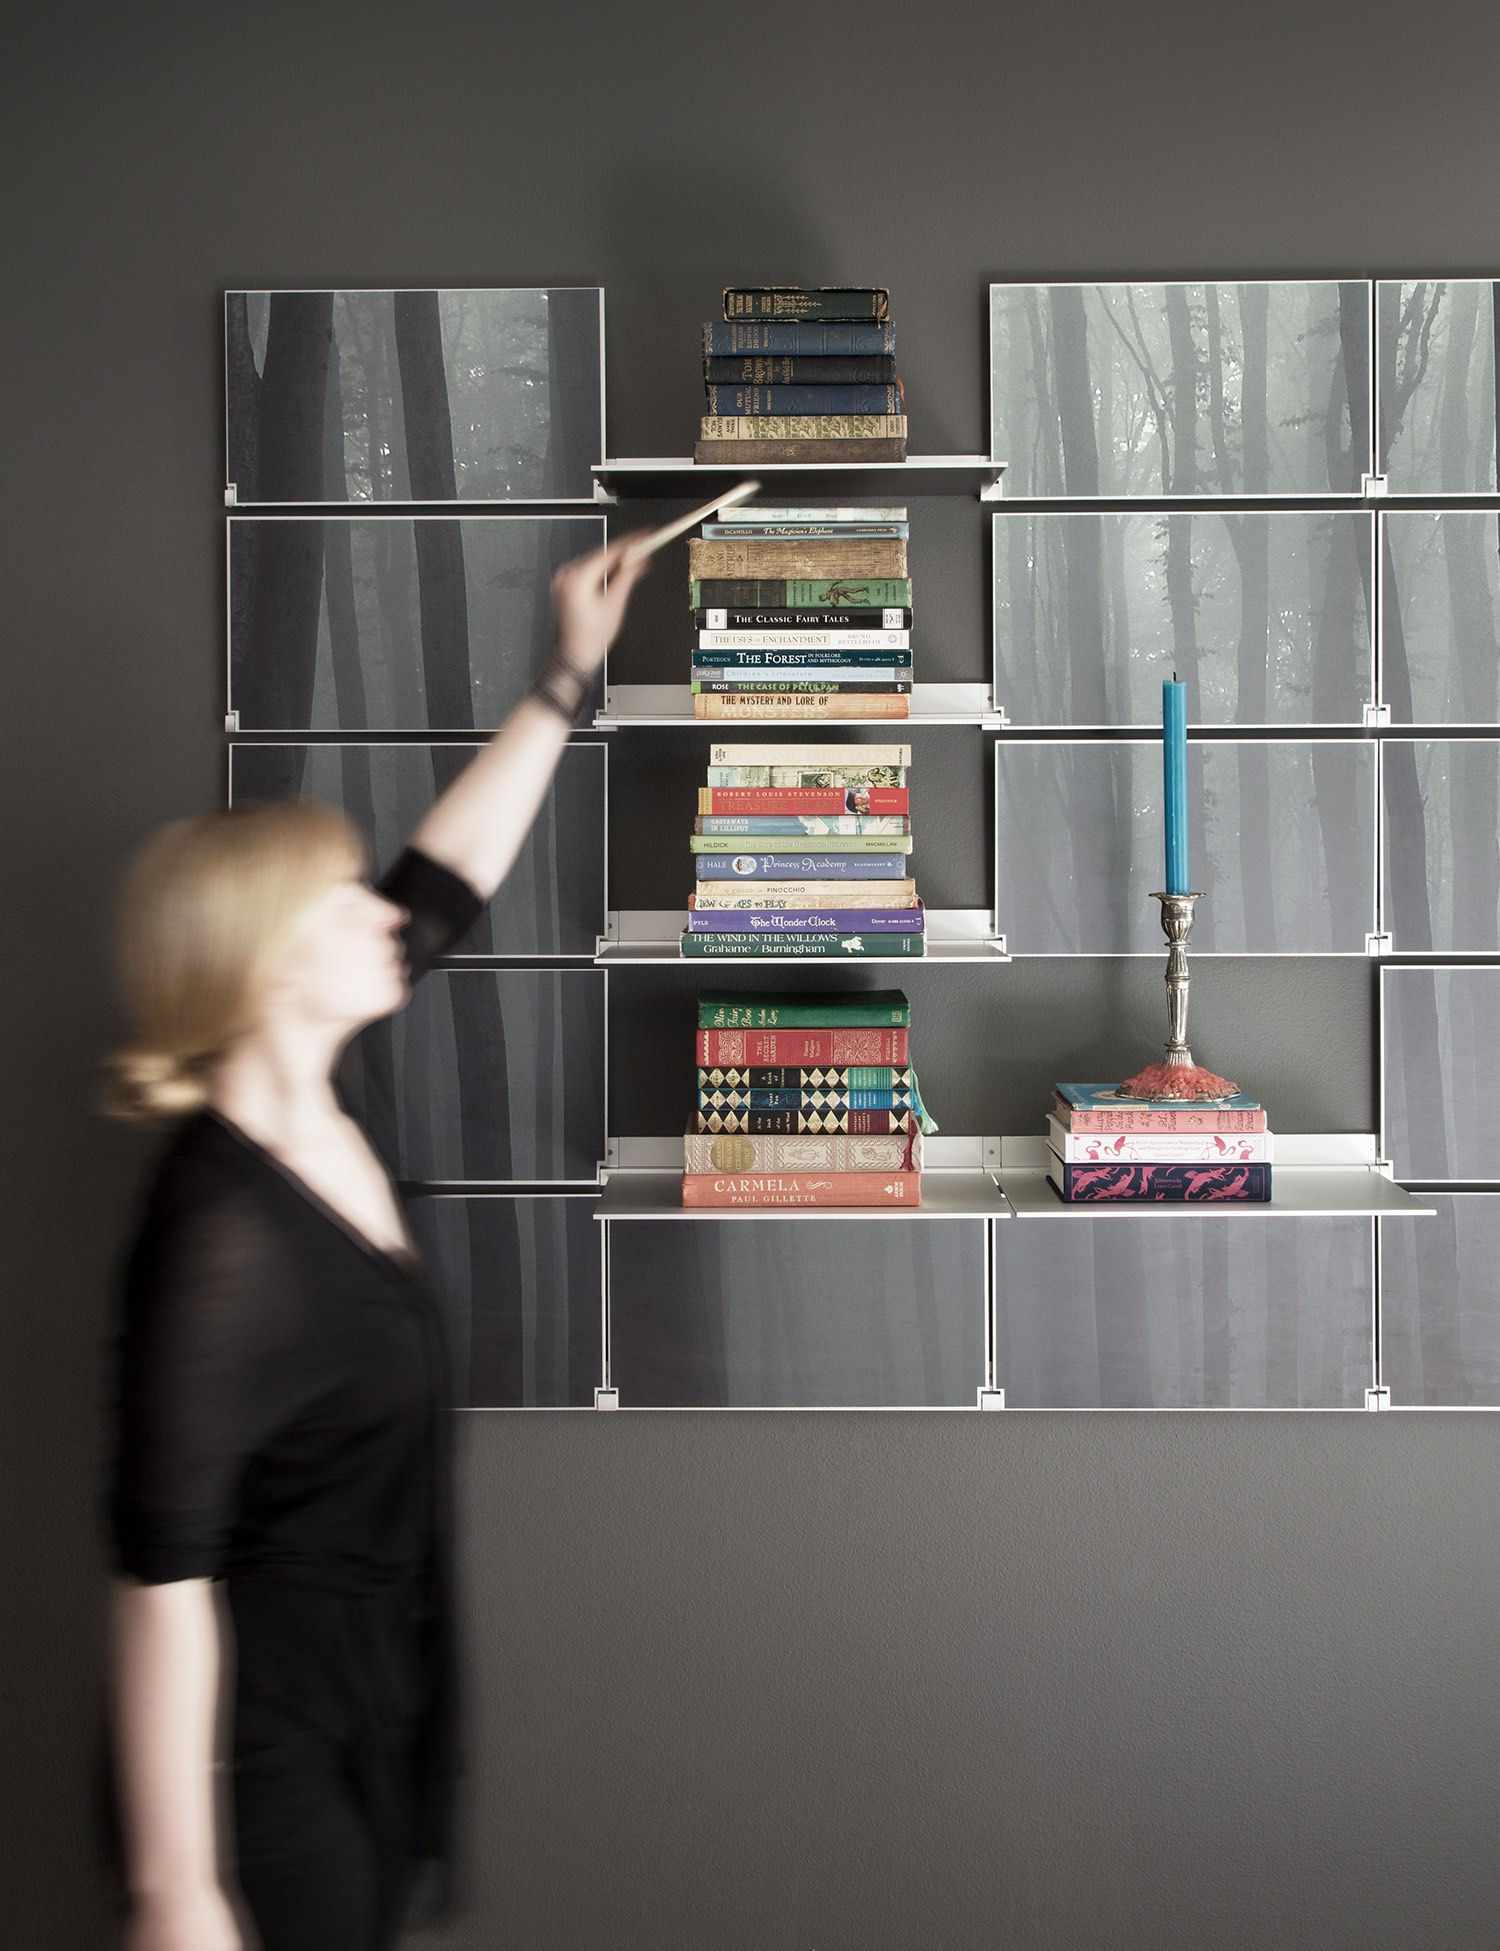 riveli-art-shelf-gallery-3.jpg